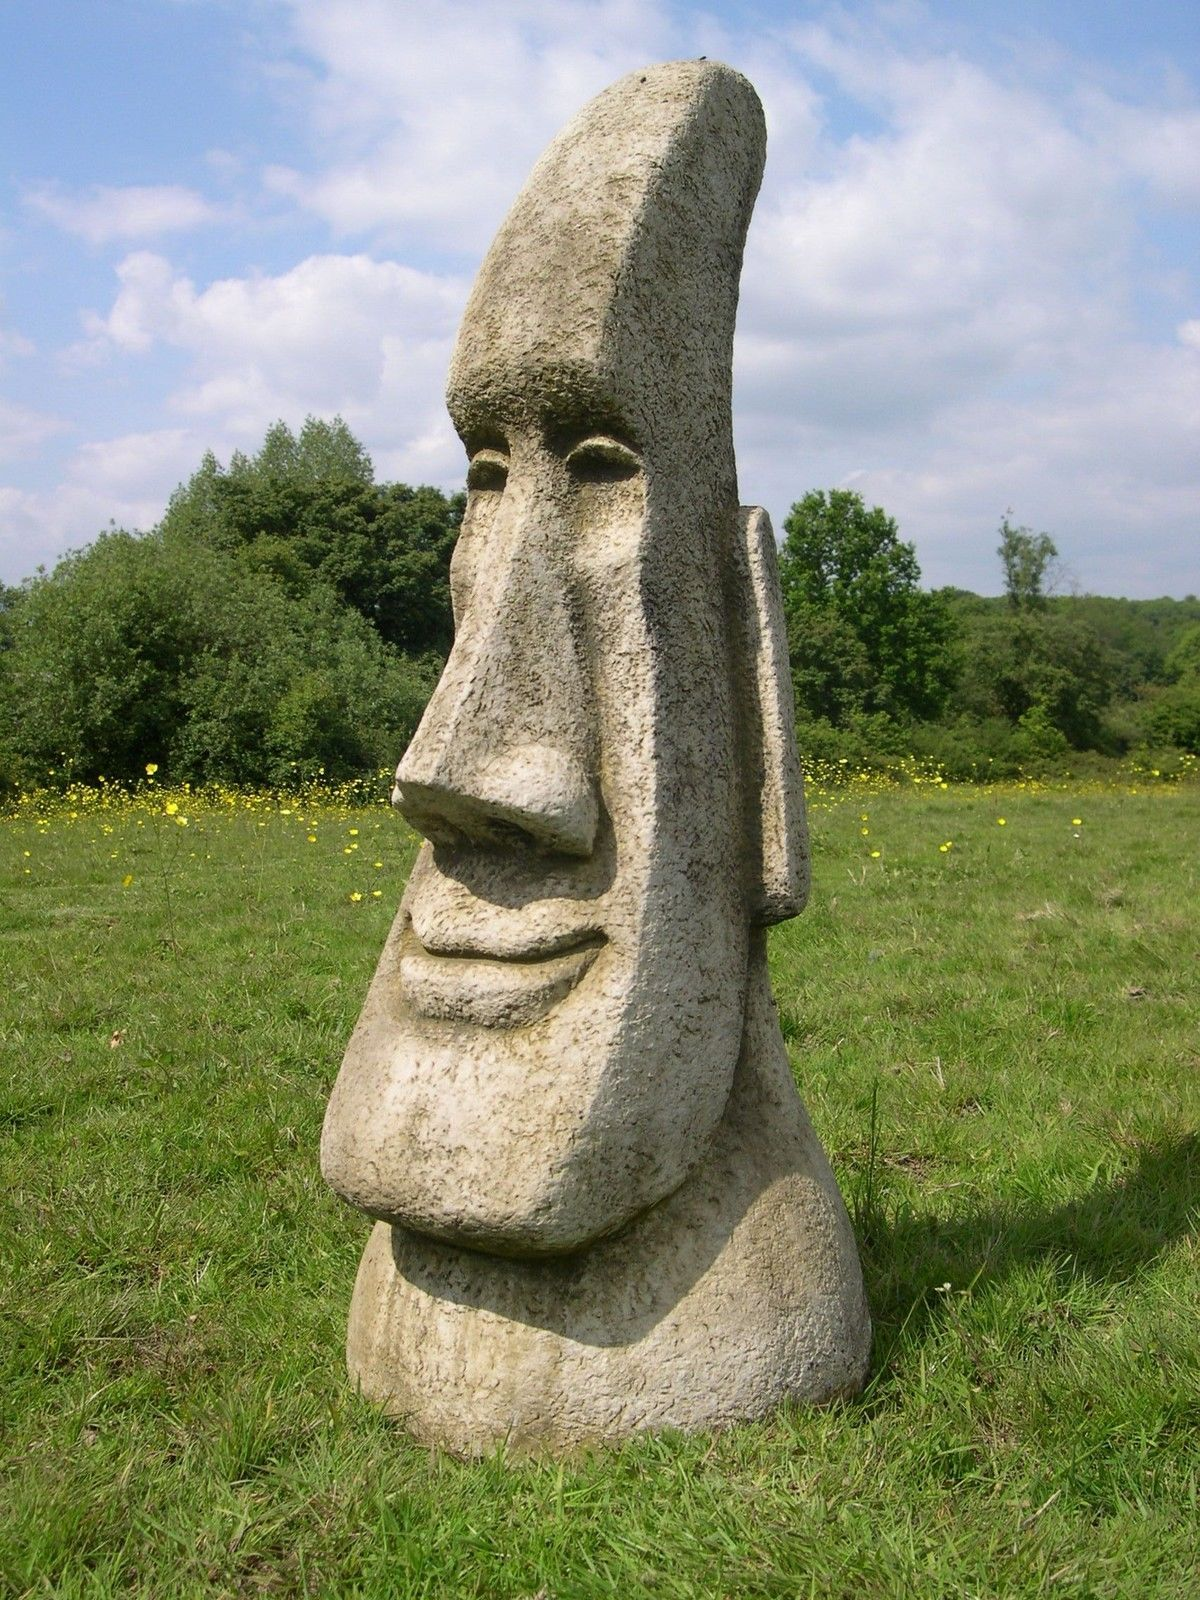 Pin By Susan Billow On Garden | Pinterest | Tiki Statues, Easter Island And  Statue